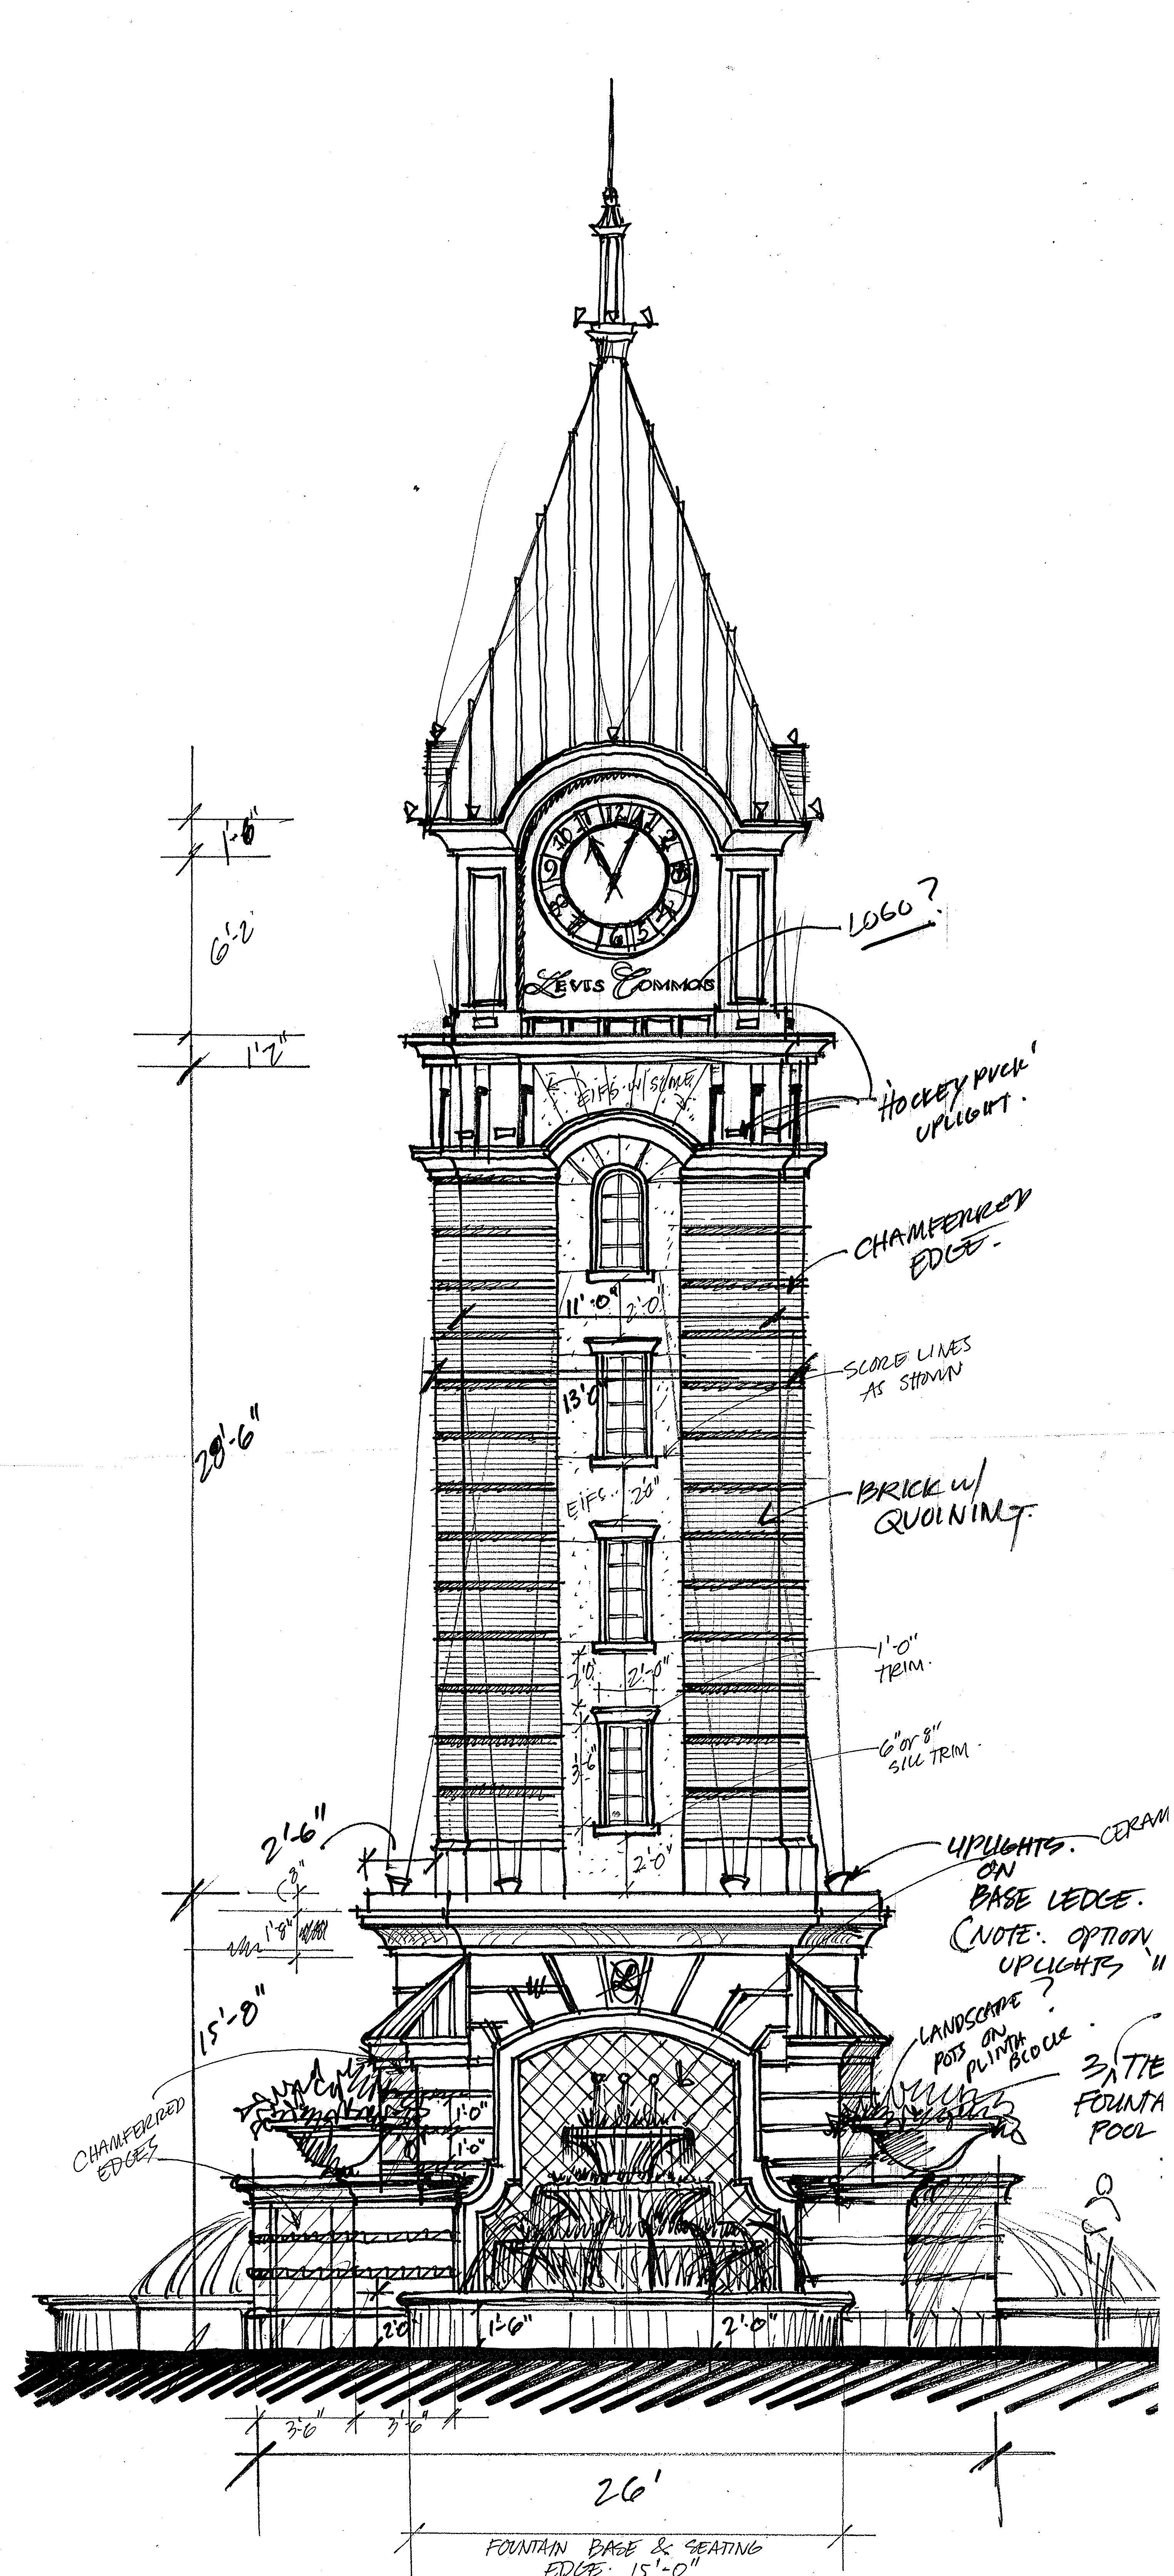 Clock tower at Levis Commons. Perrysburg Ohio. Elevation